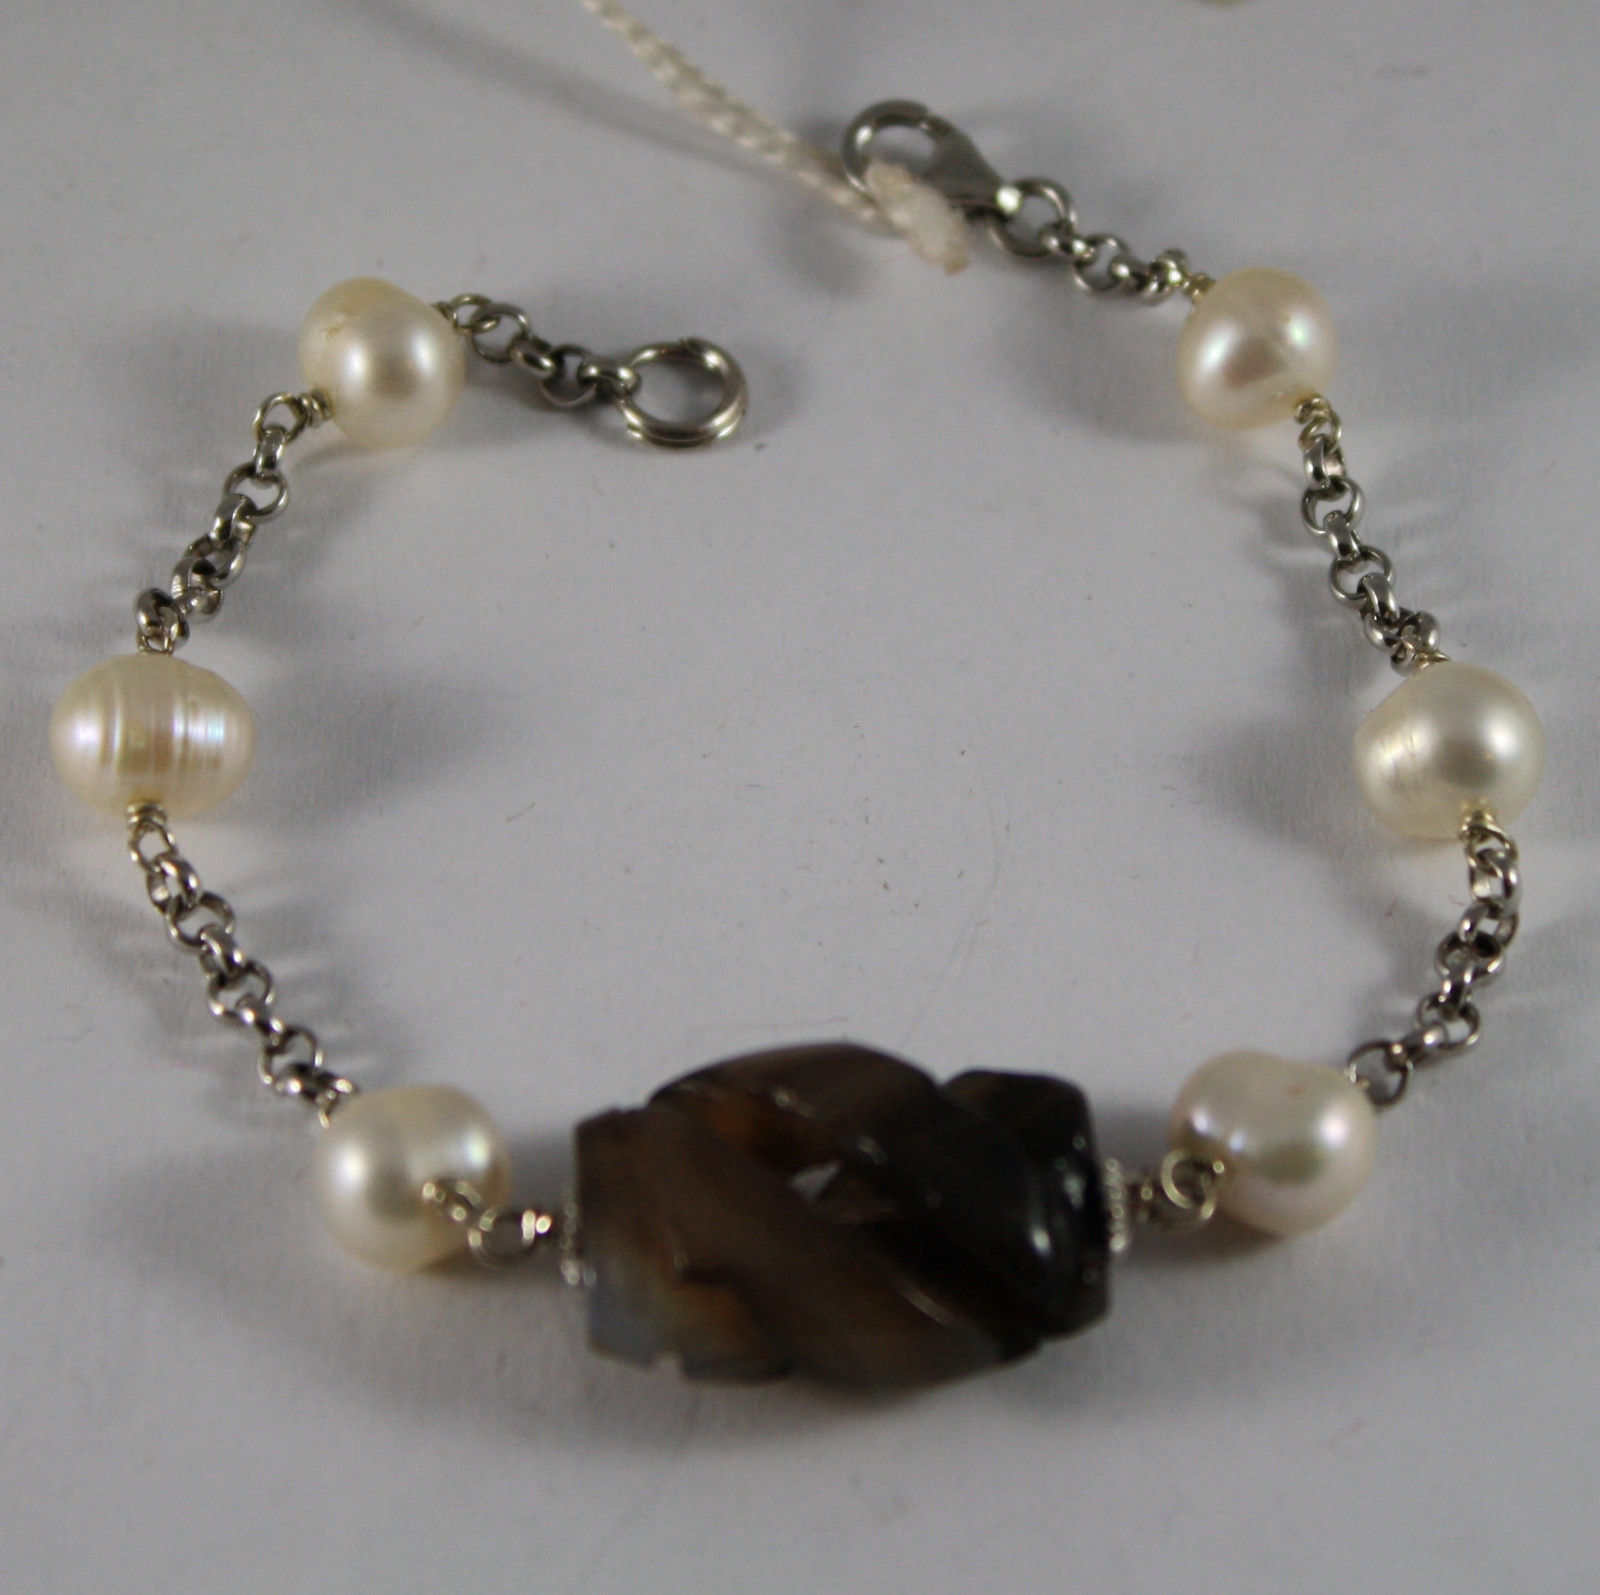 .925 RHODIUM SILVER BRACELET WITH BROWN QUARTZ AND WHITE PEARLS